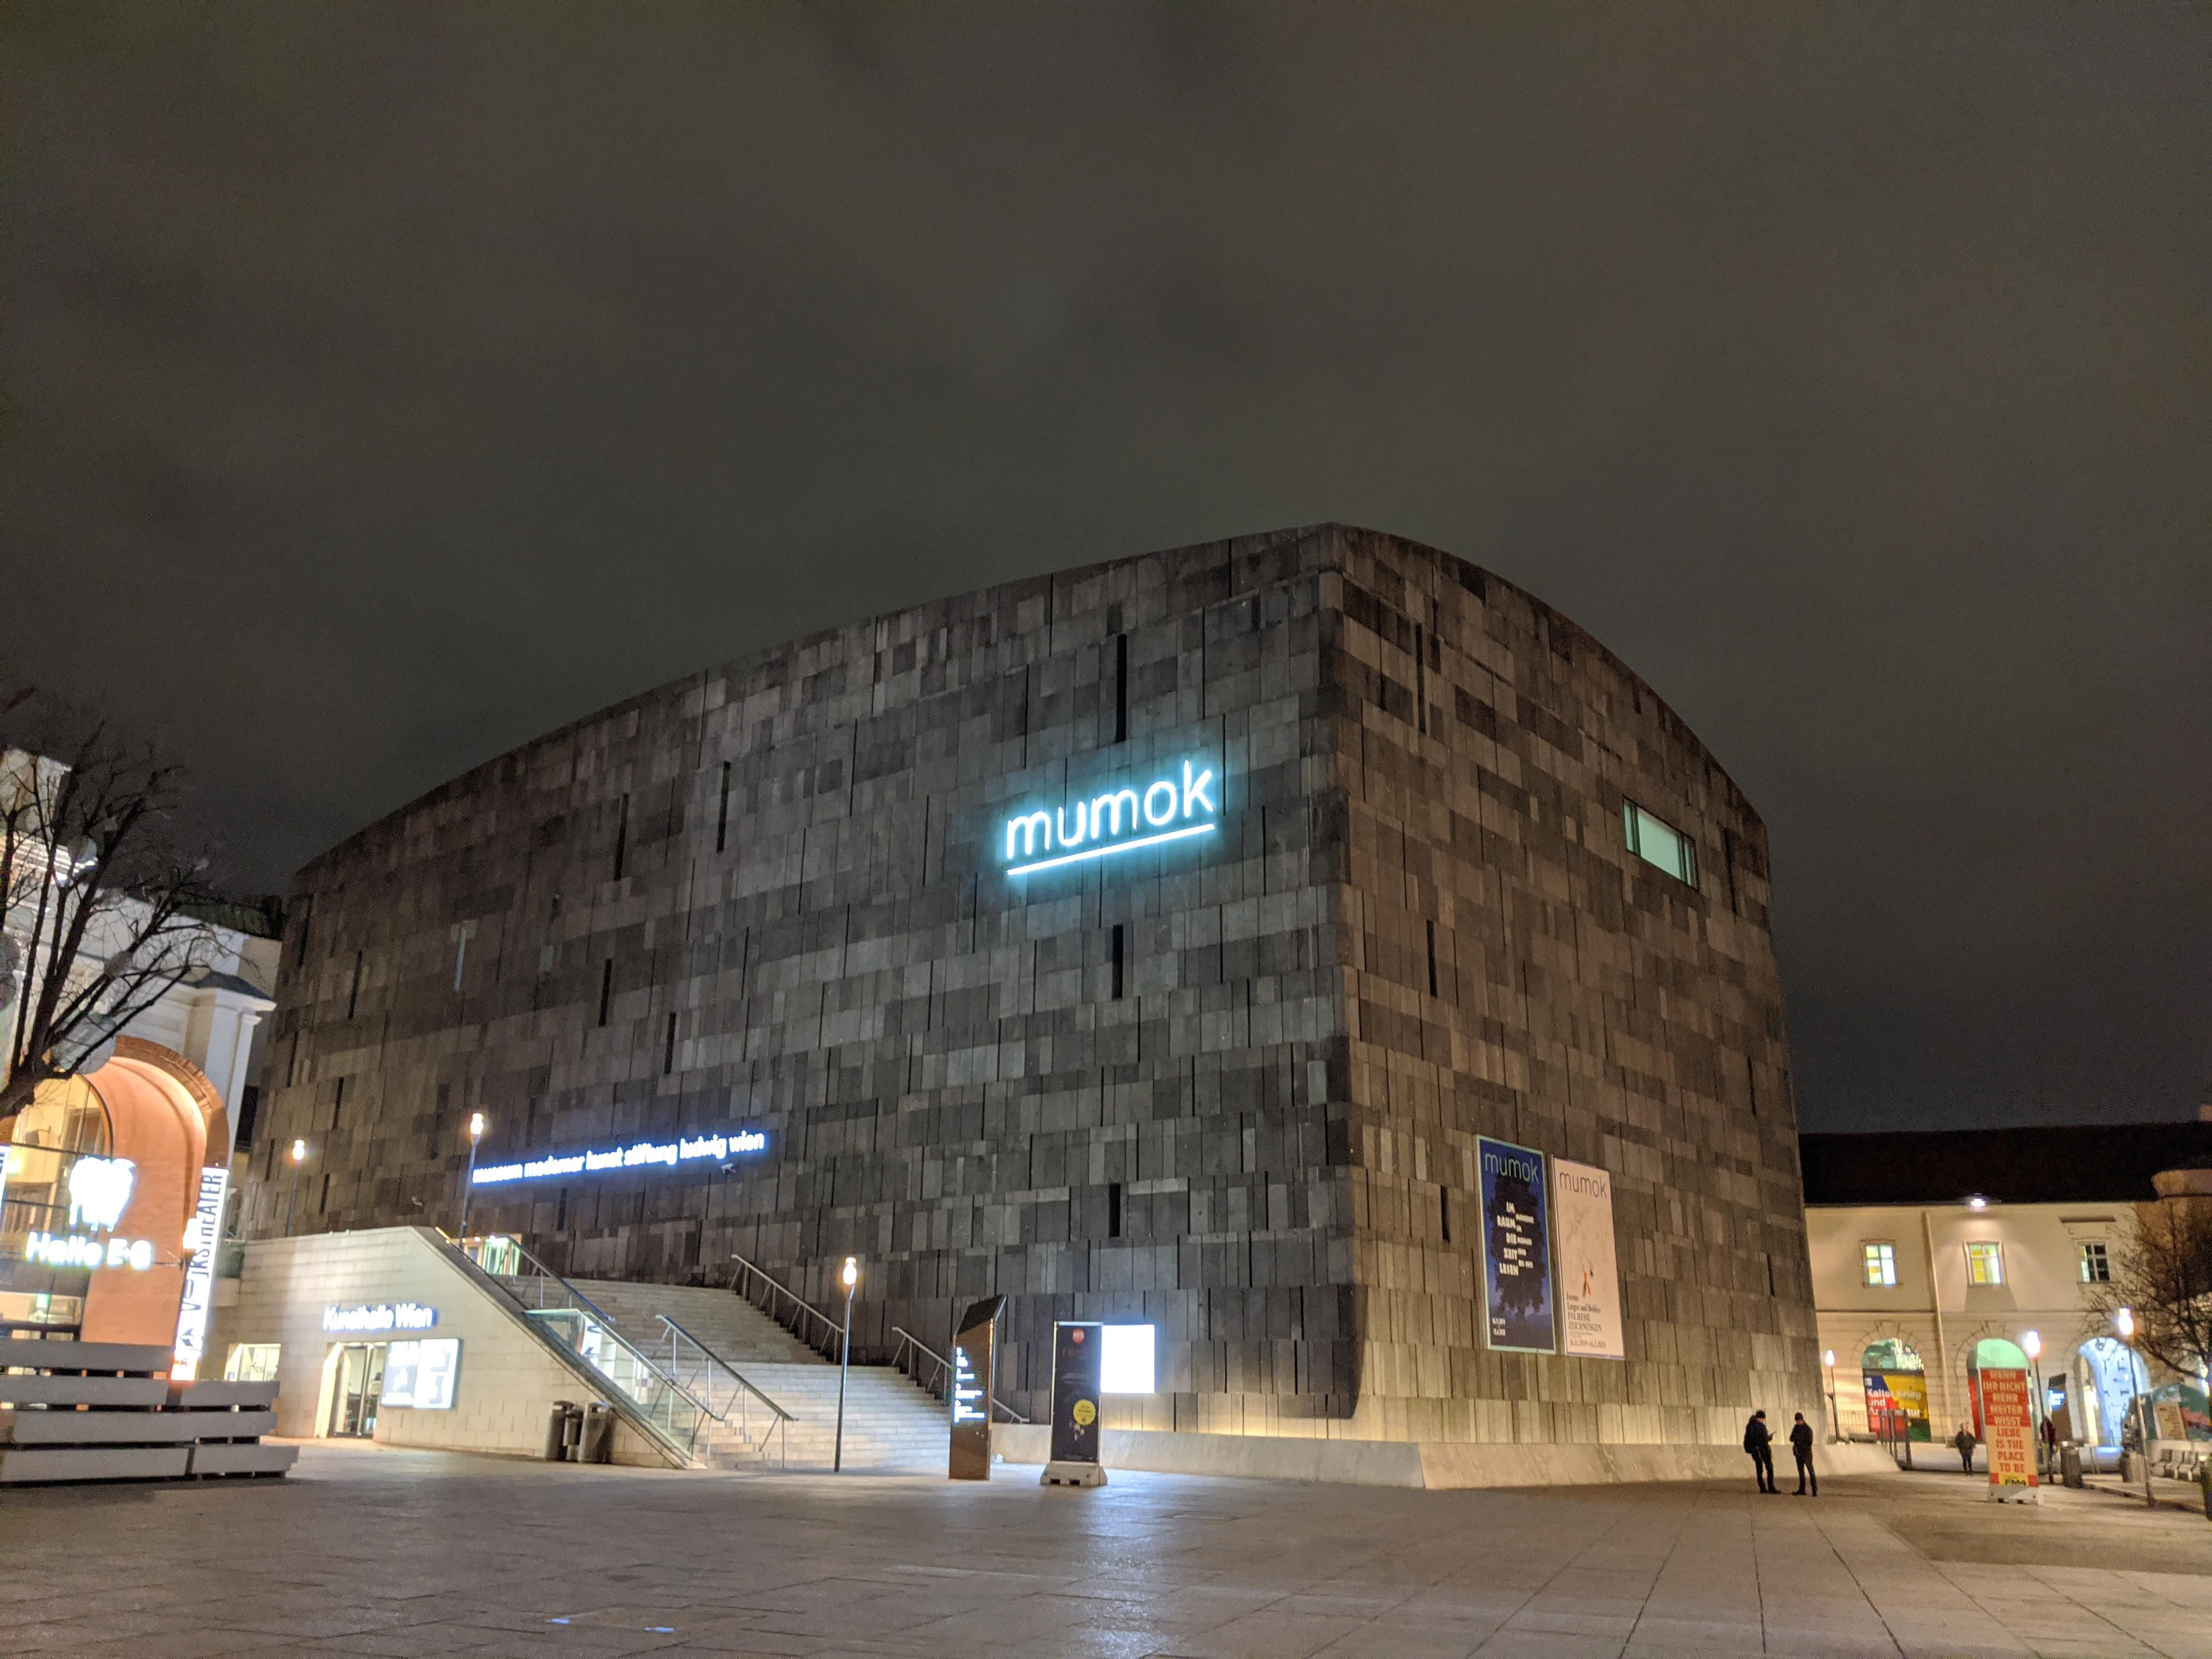 Mumok Modern Art Museum In Vienna Austria In 2020 Museum Of Modern Art Scary Places Historic Buildings